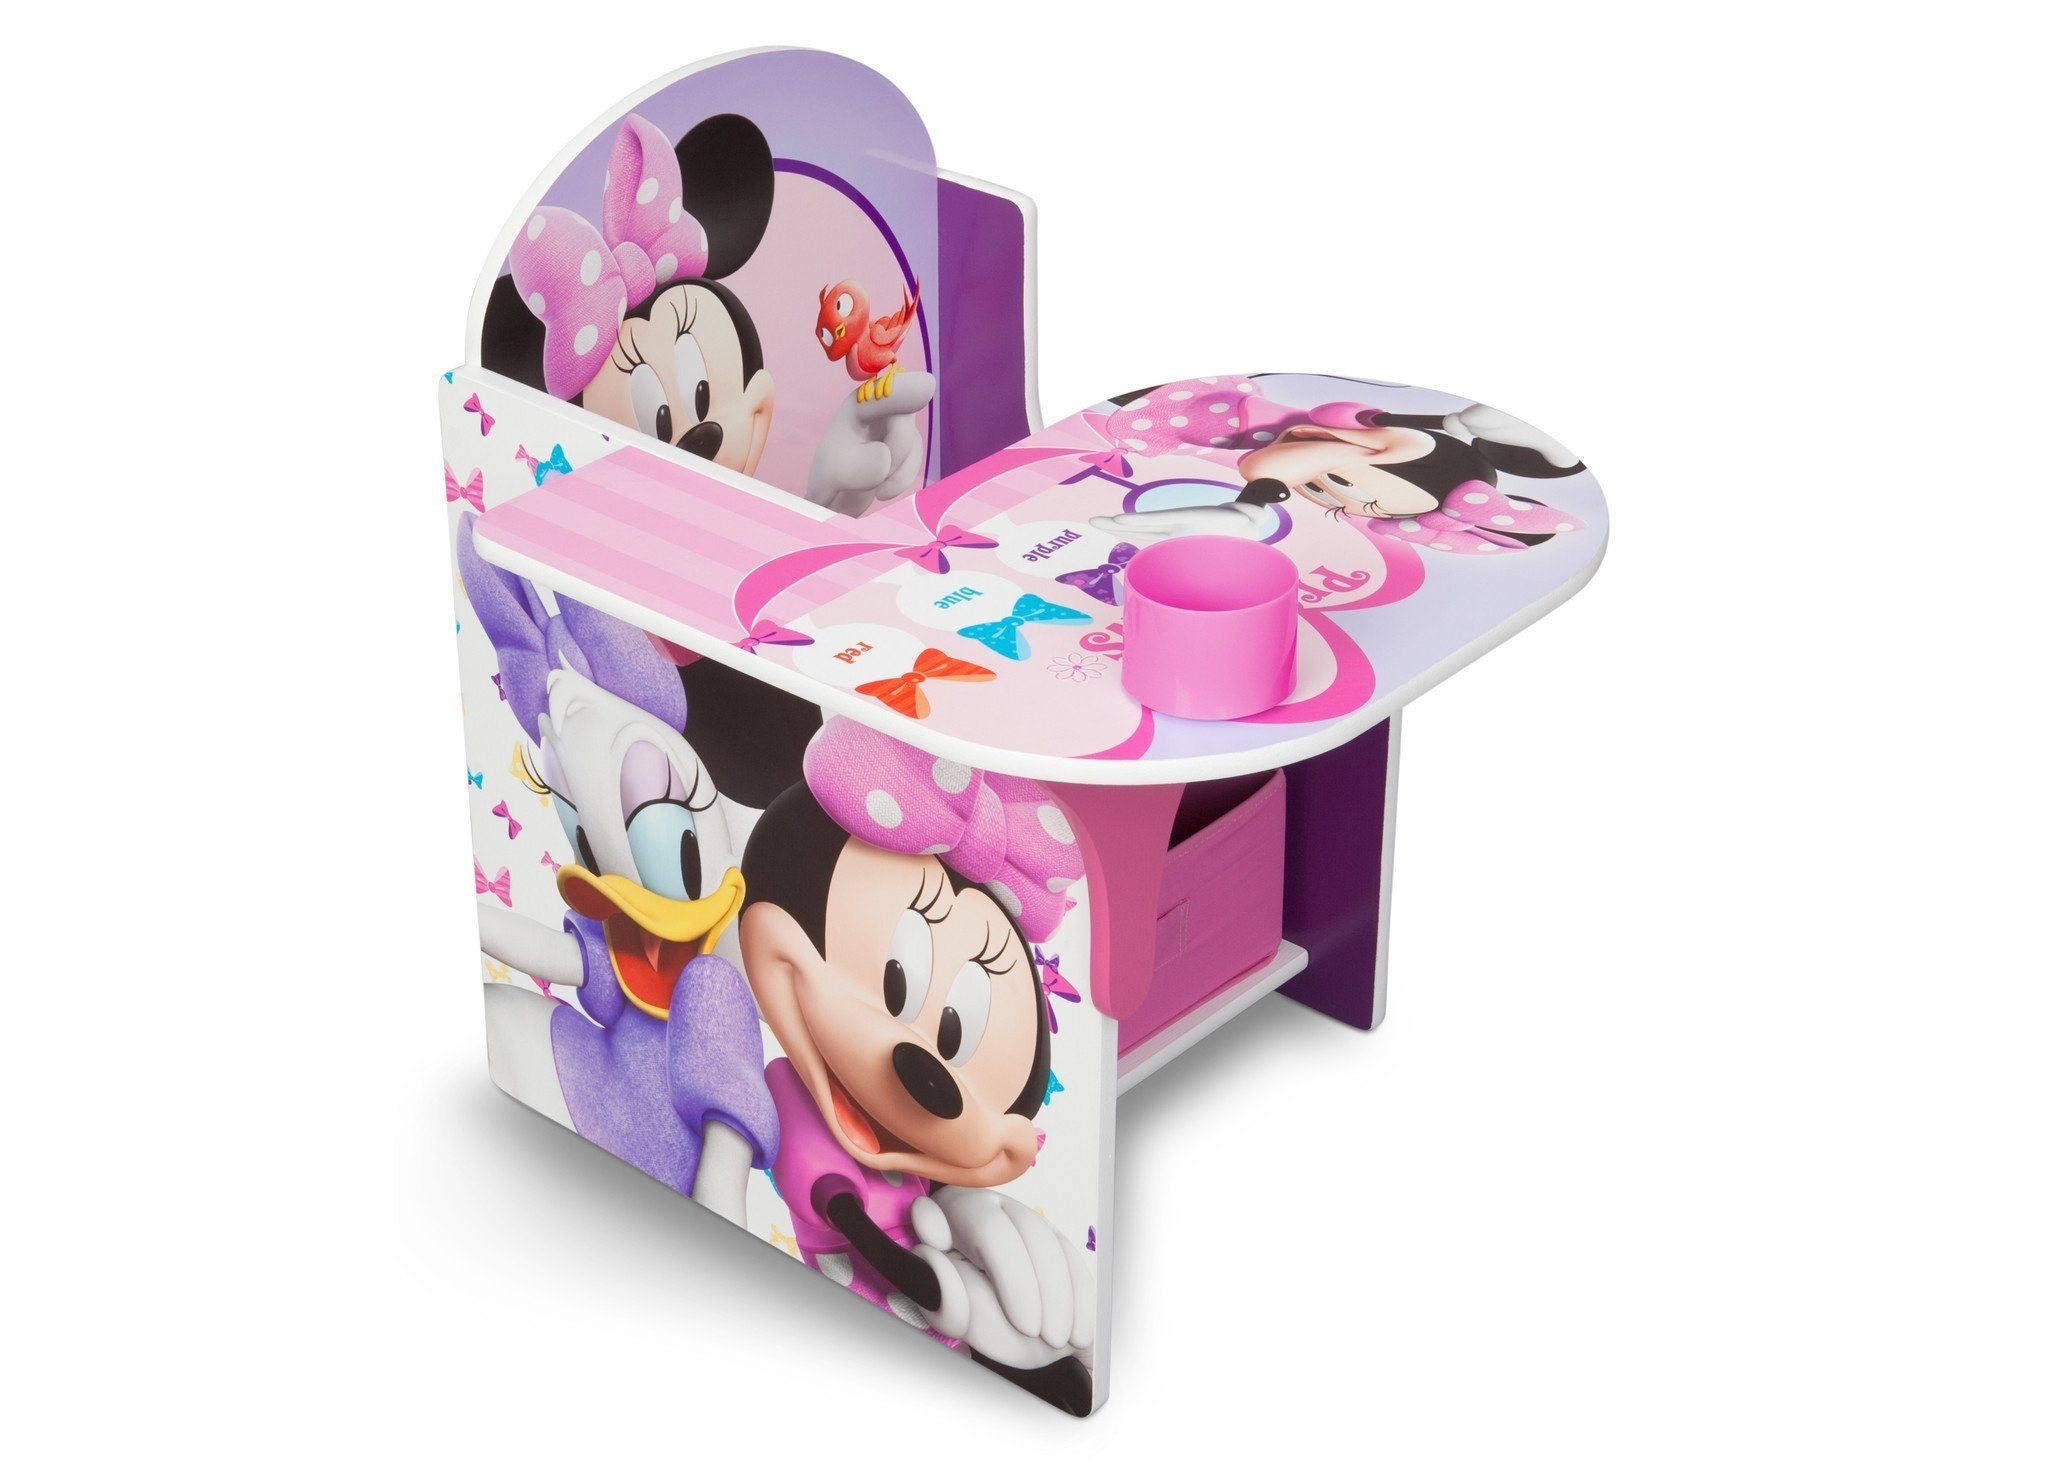 Ordinaire Delta Children Minnie Mouse Chair Desk With Storage Bin Right Side View A1a  ...